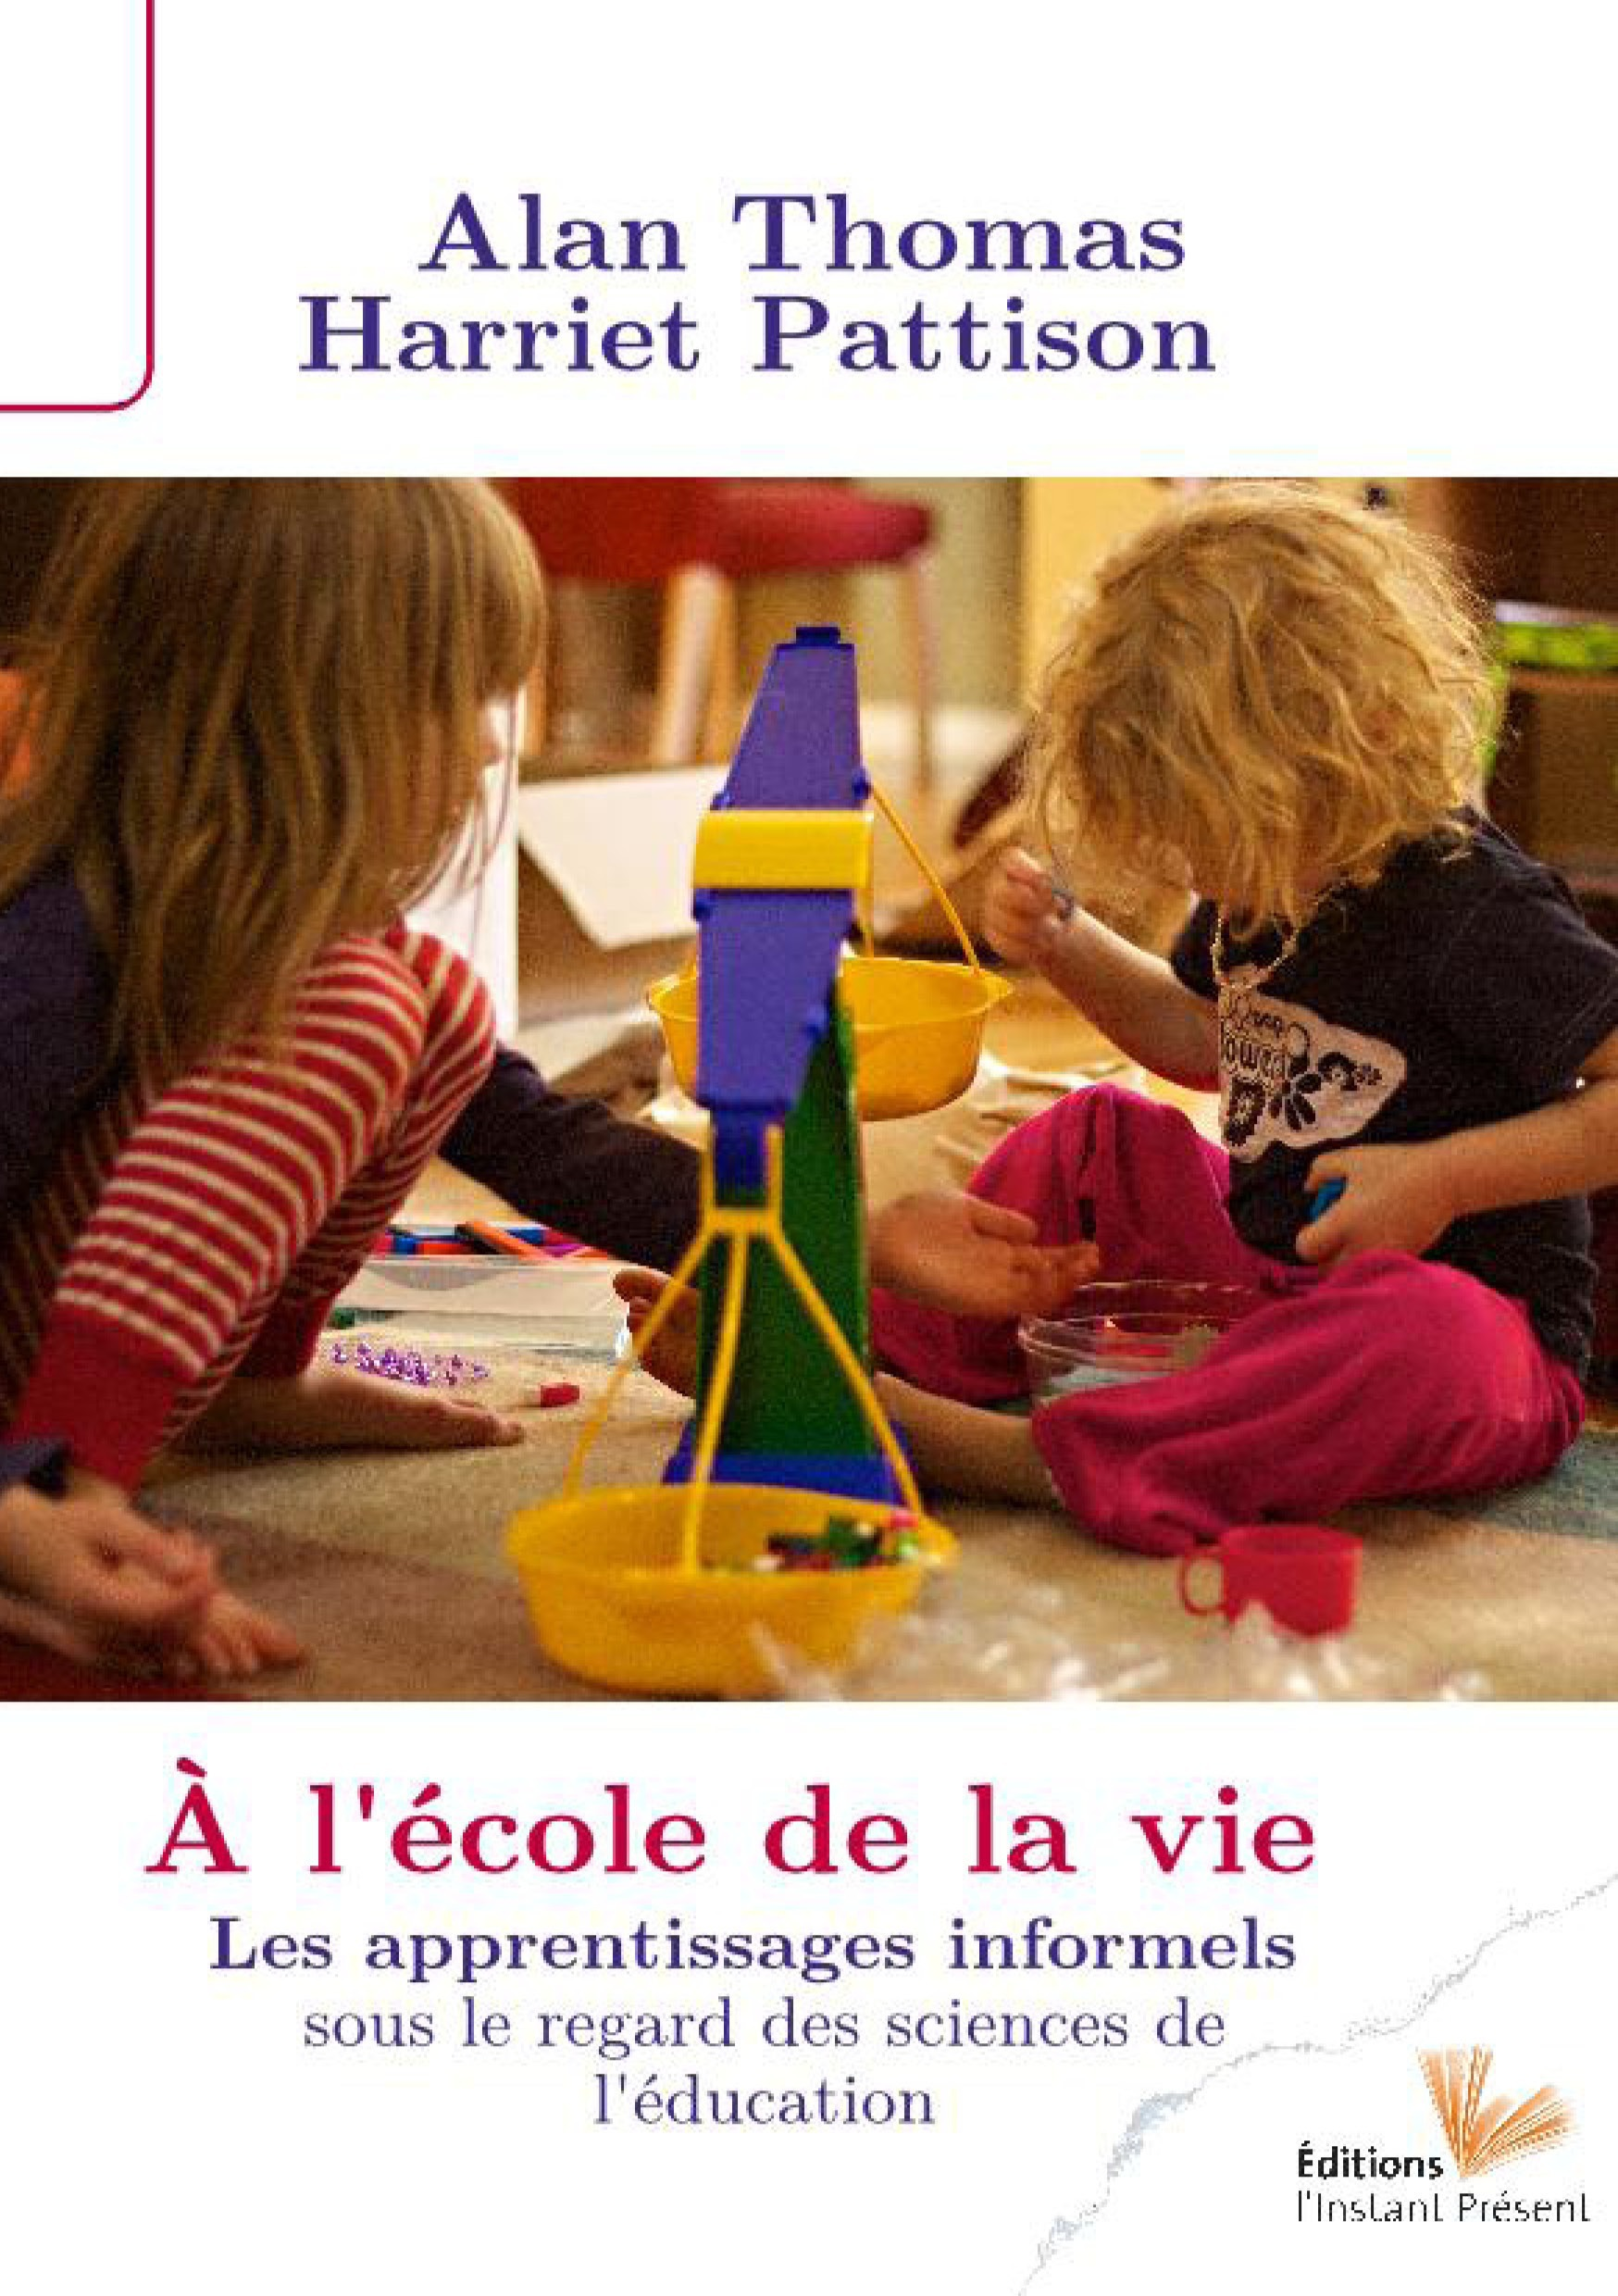 Harriet Pattison À l'école de la vie